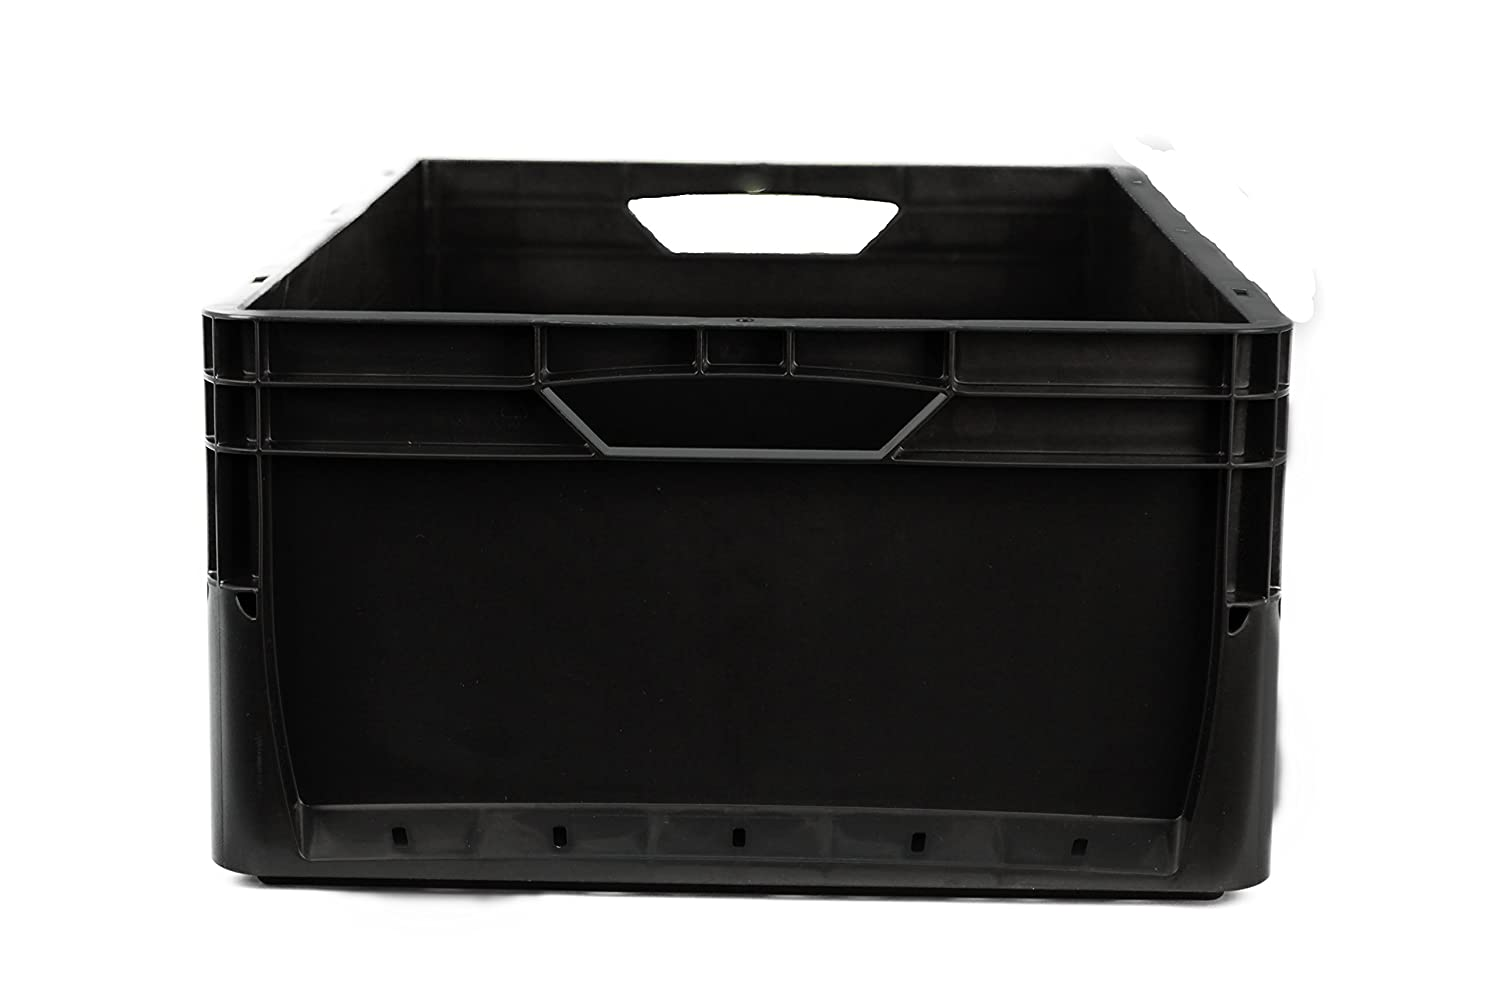 3 x 66 Litre Euronorm Eco Industrial Plastic Stacking Euro Storage Containers Boxes Crates BLACK